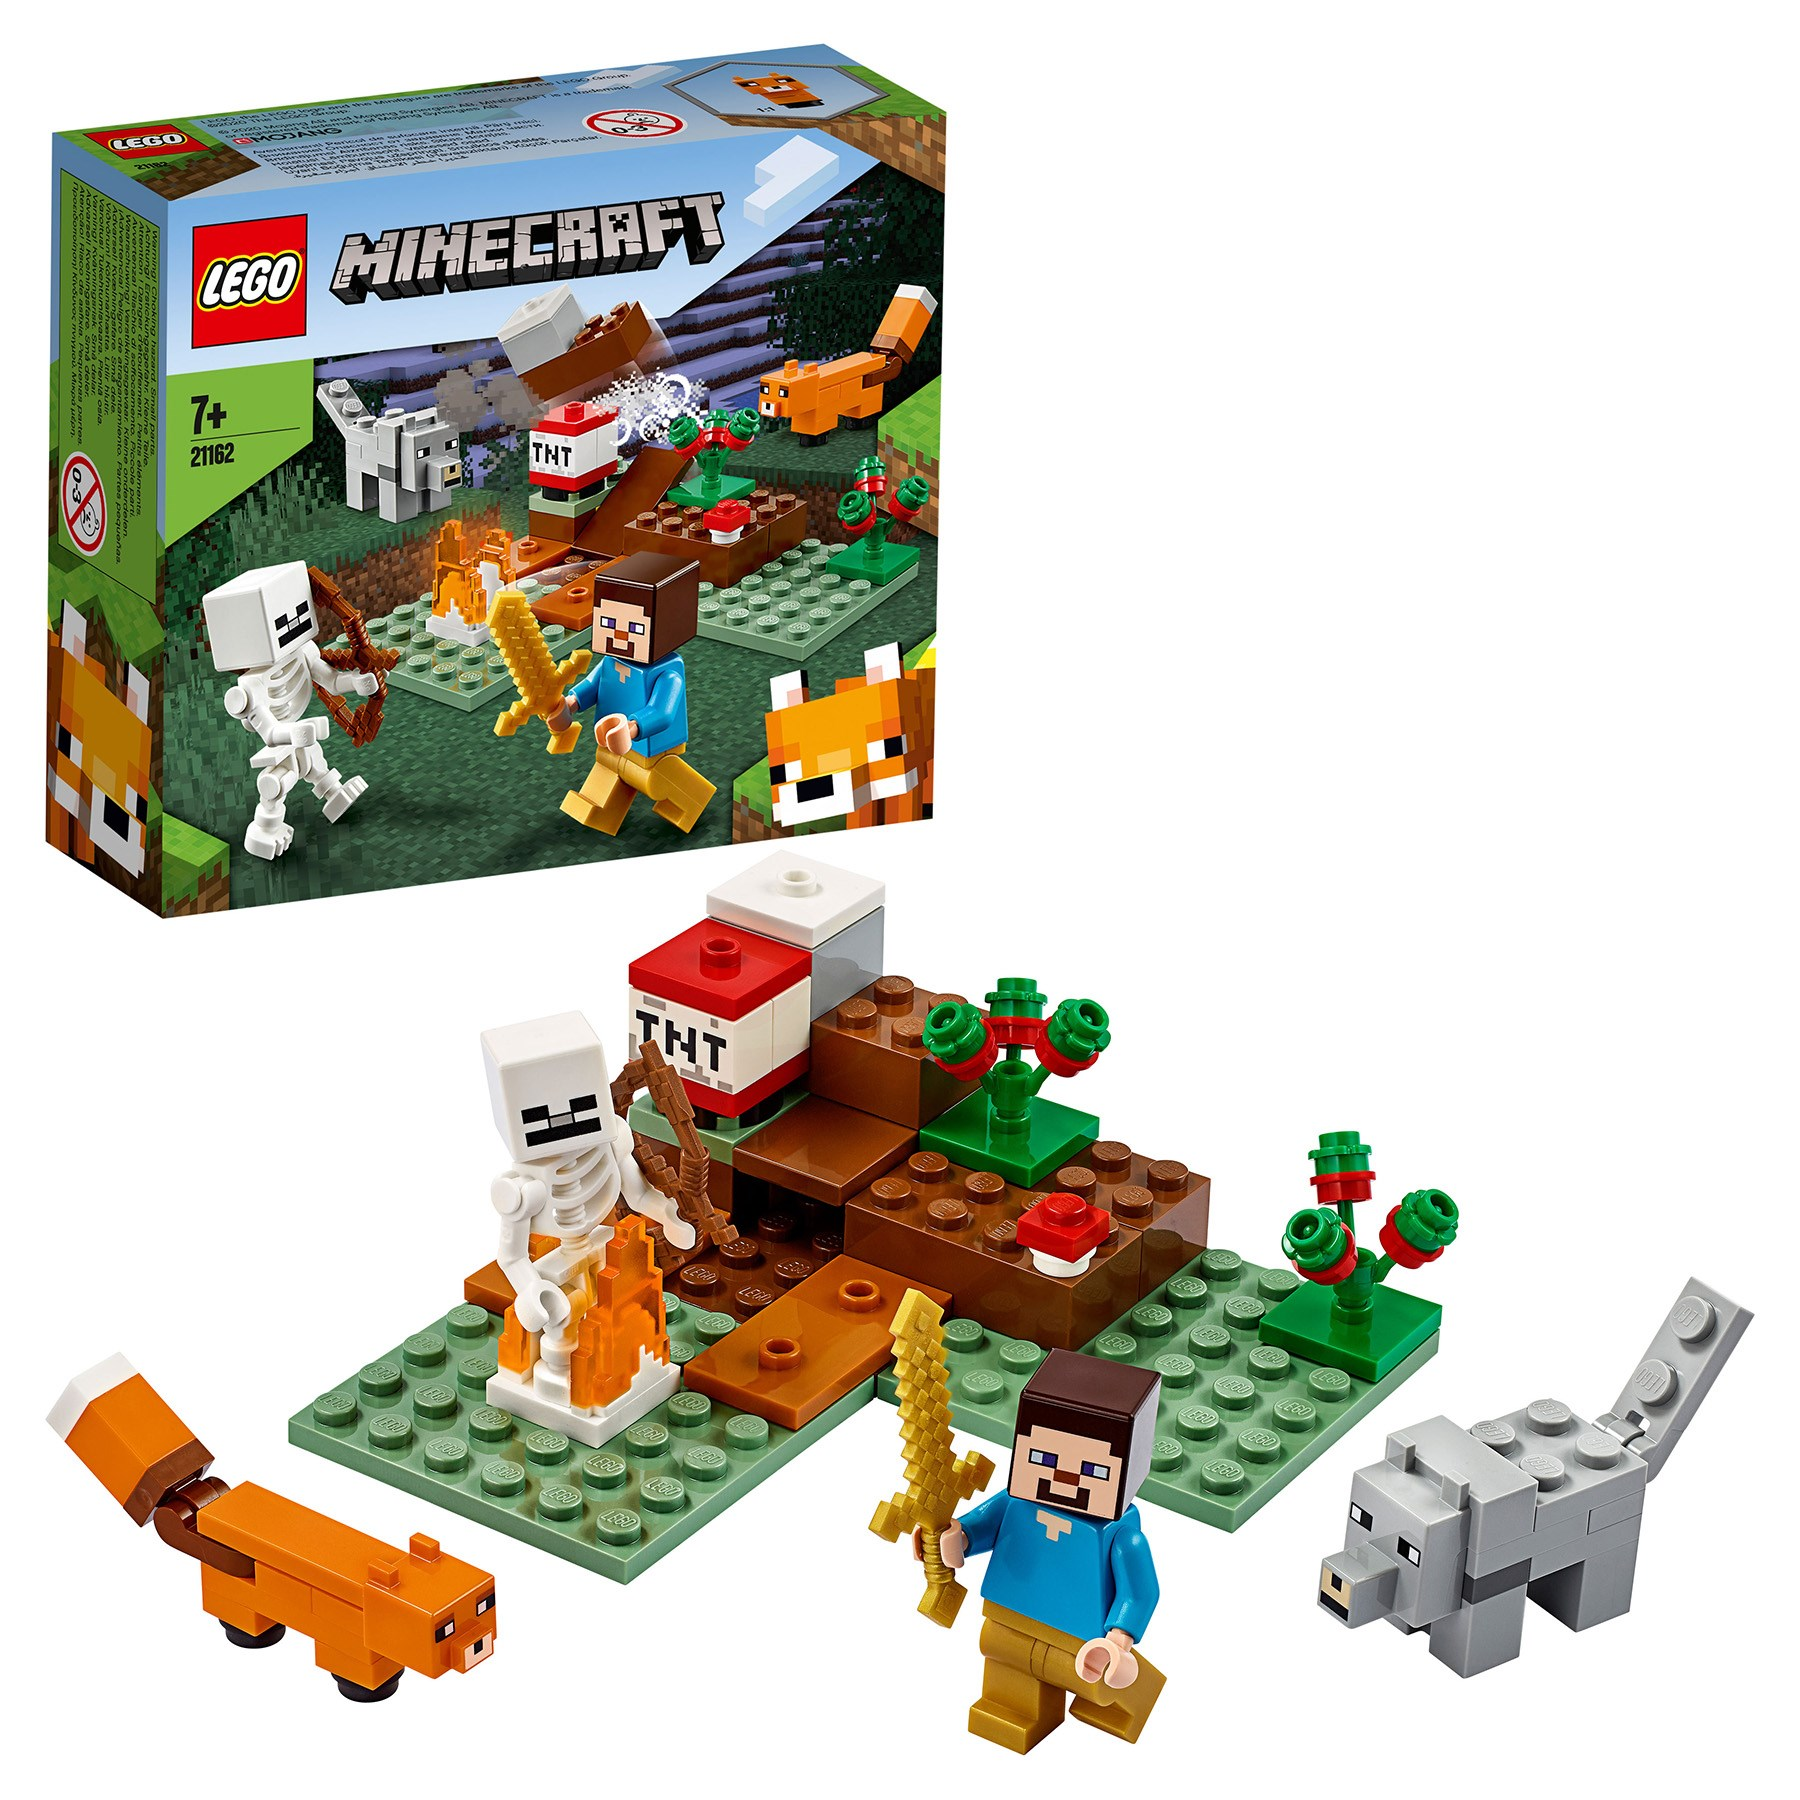 Designer Lego Minecraft 21162 Adventures In Taiga